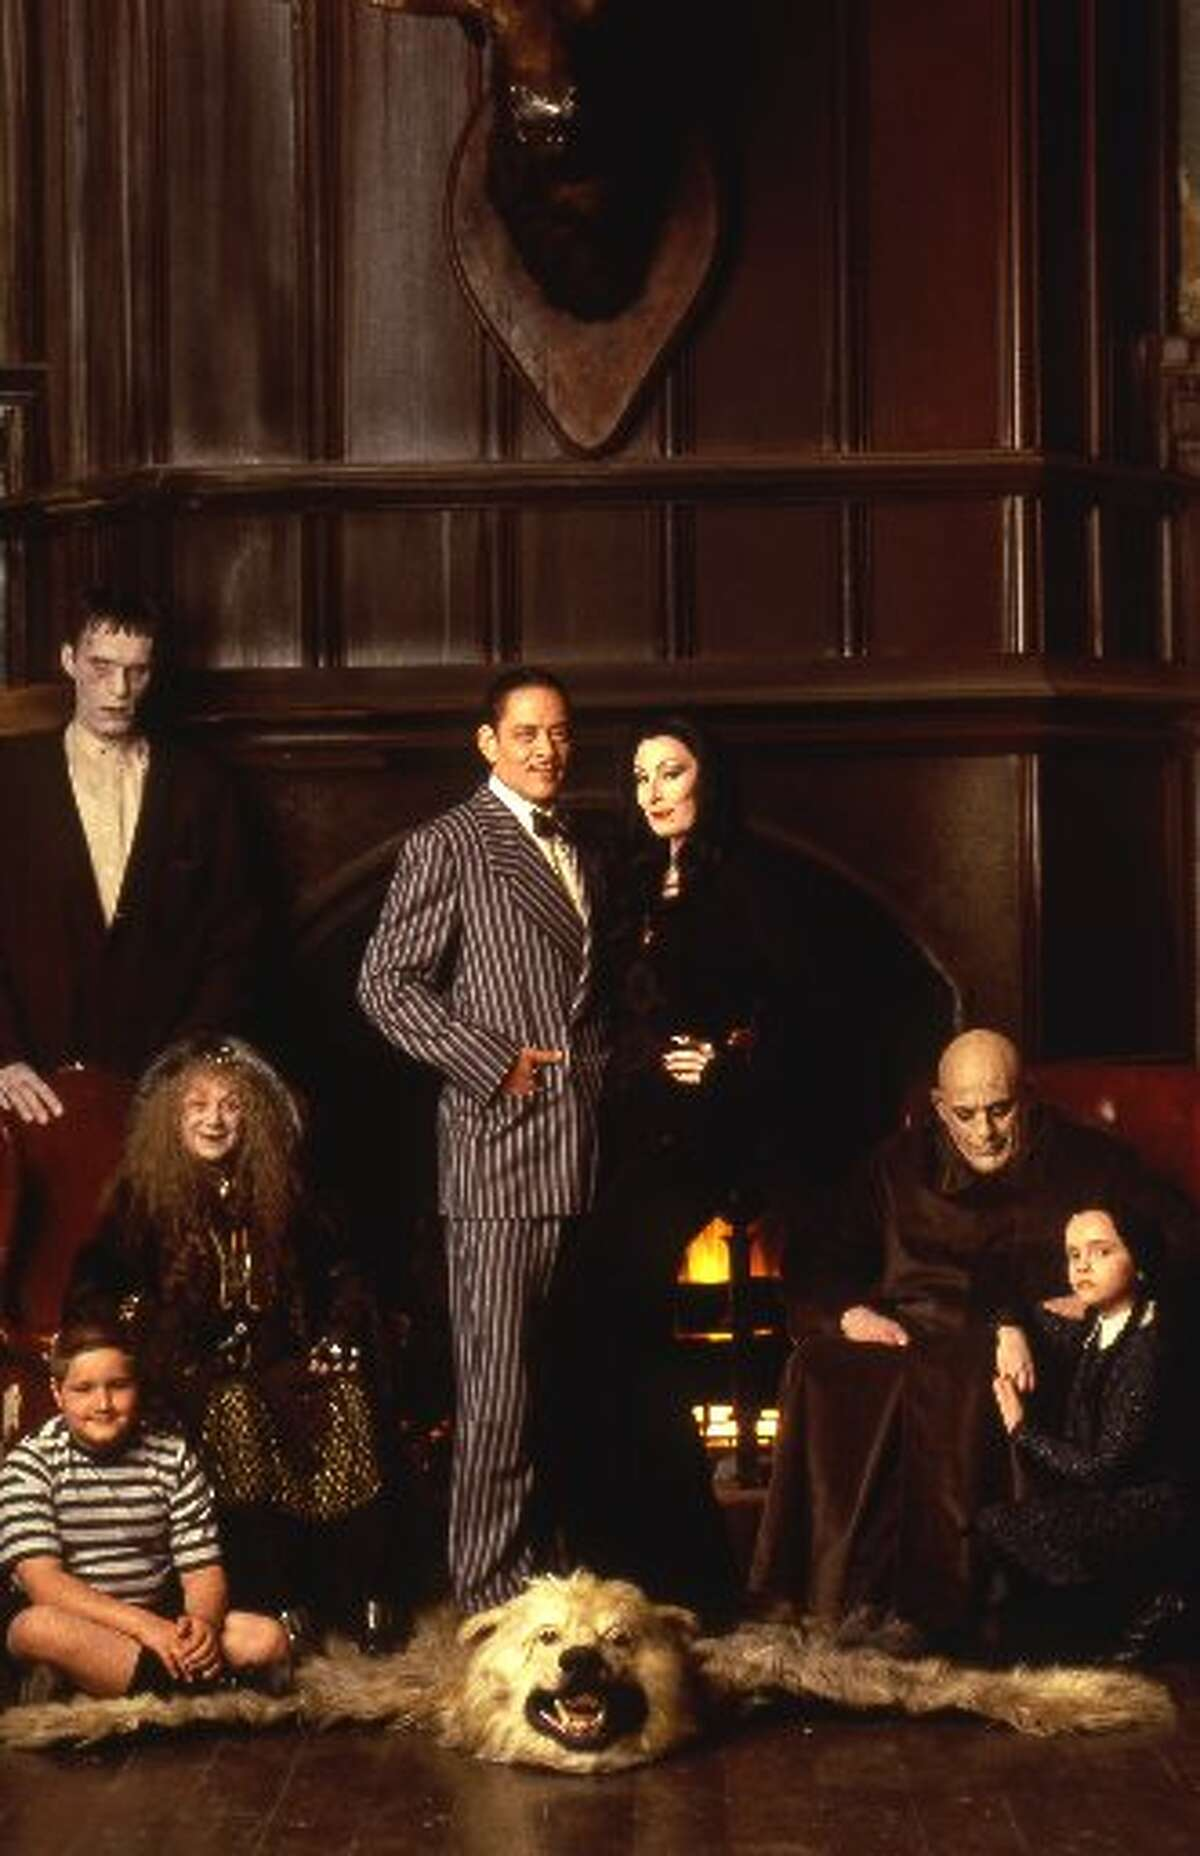 The Addams Family Network: Freeform Oct. 24 - 4:35pm ESTOct. 25 - 4pm ESTOct. 29 - 5:15pm ESTOct. 30 - 3:15pm ESTOct. 31 - 5pm ESTFull Freeform schedule